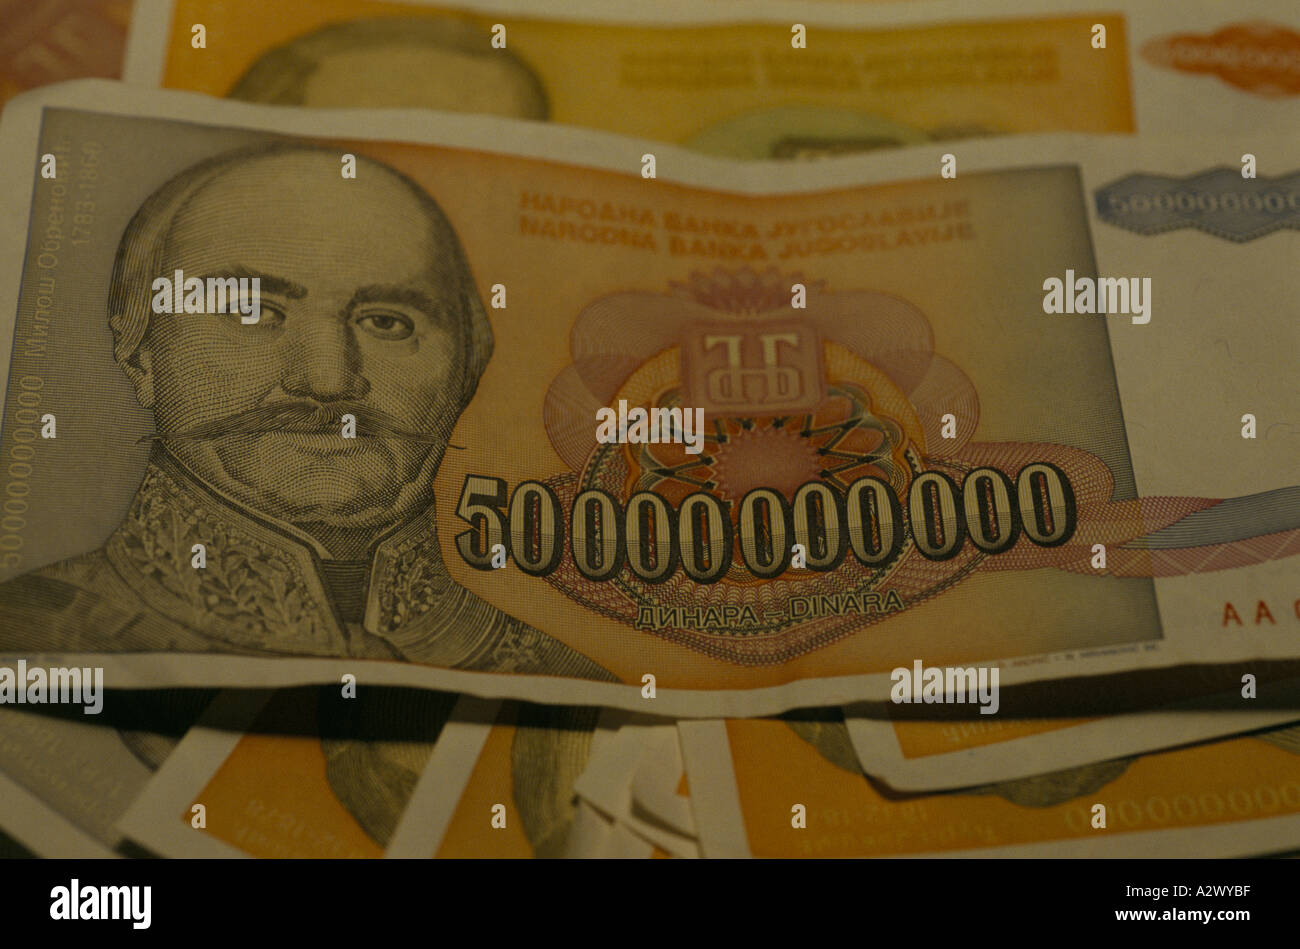 Belgrade A 50 Billion Dinar Note Worth A Us Dollar One Day And Us 50cents The Next Due To Hyperinflation Dec 1993